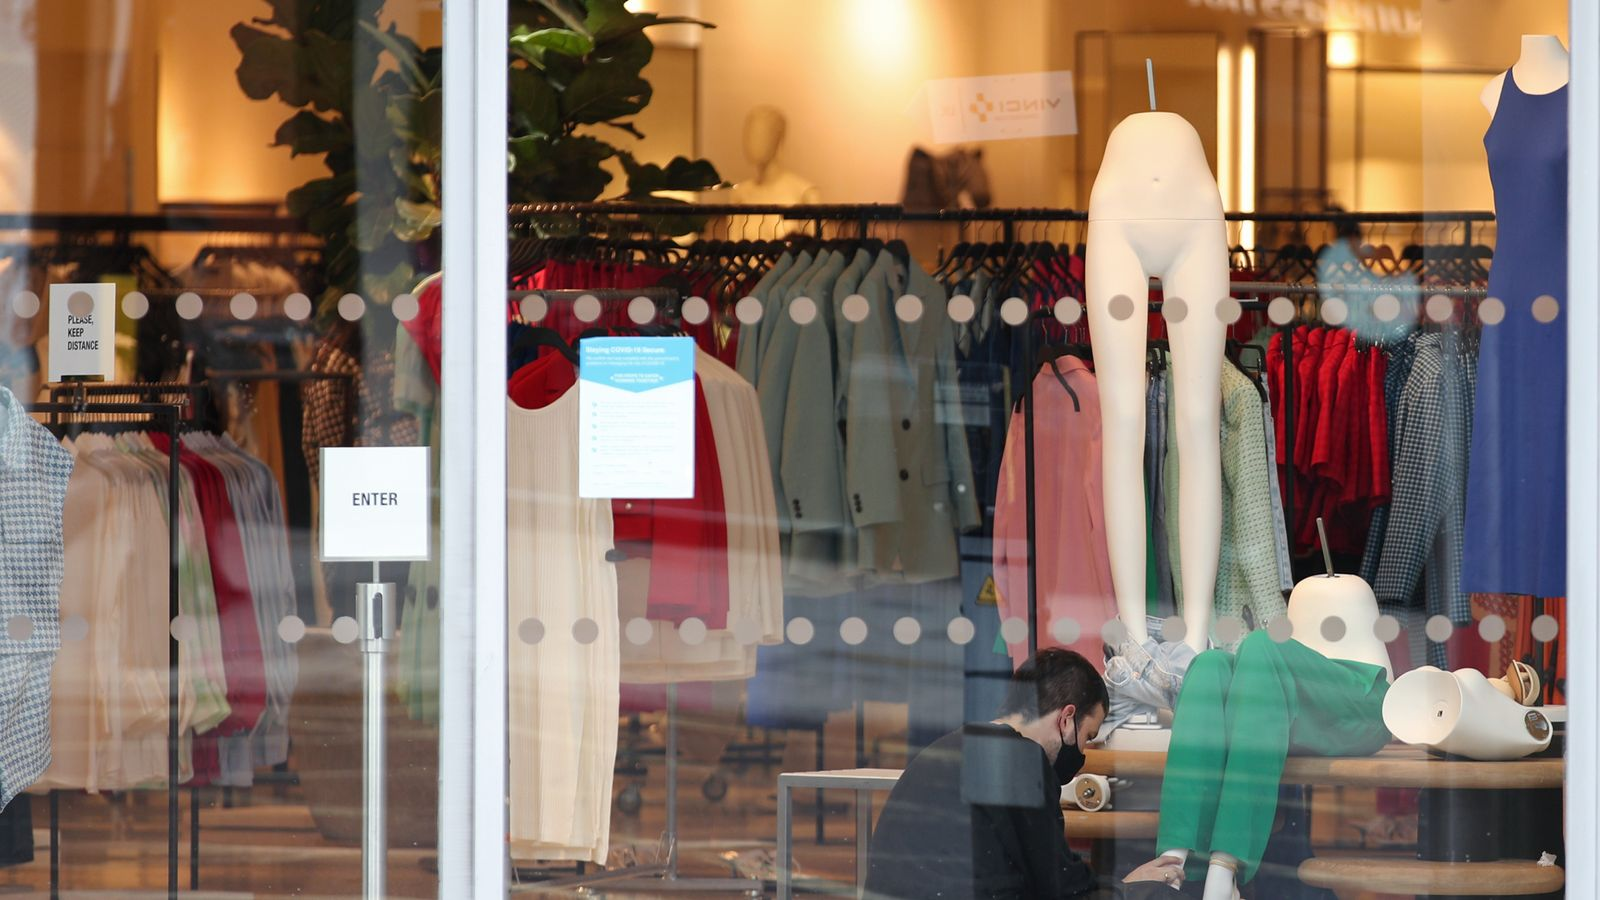 Most UK fashion brands 'moving too slow on transparency' over ethical practices – report